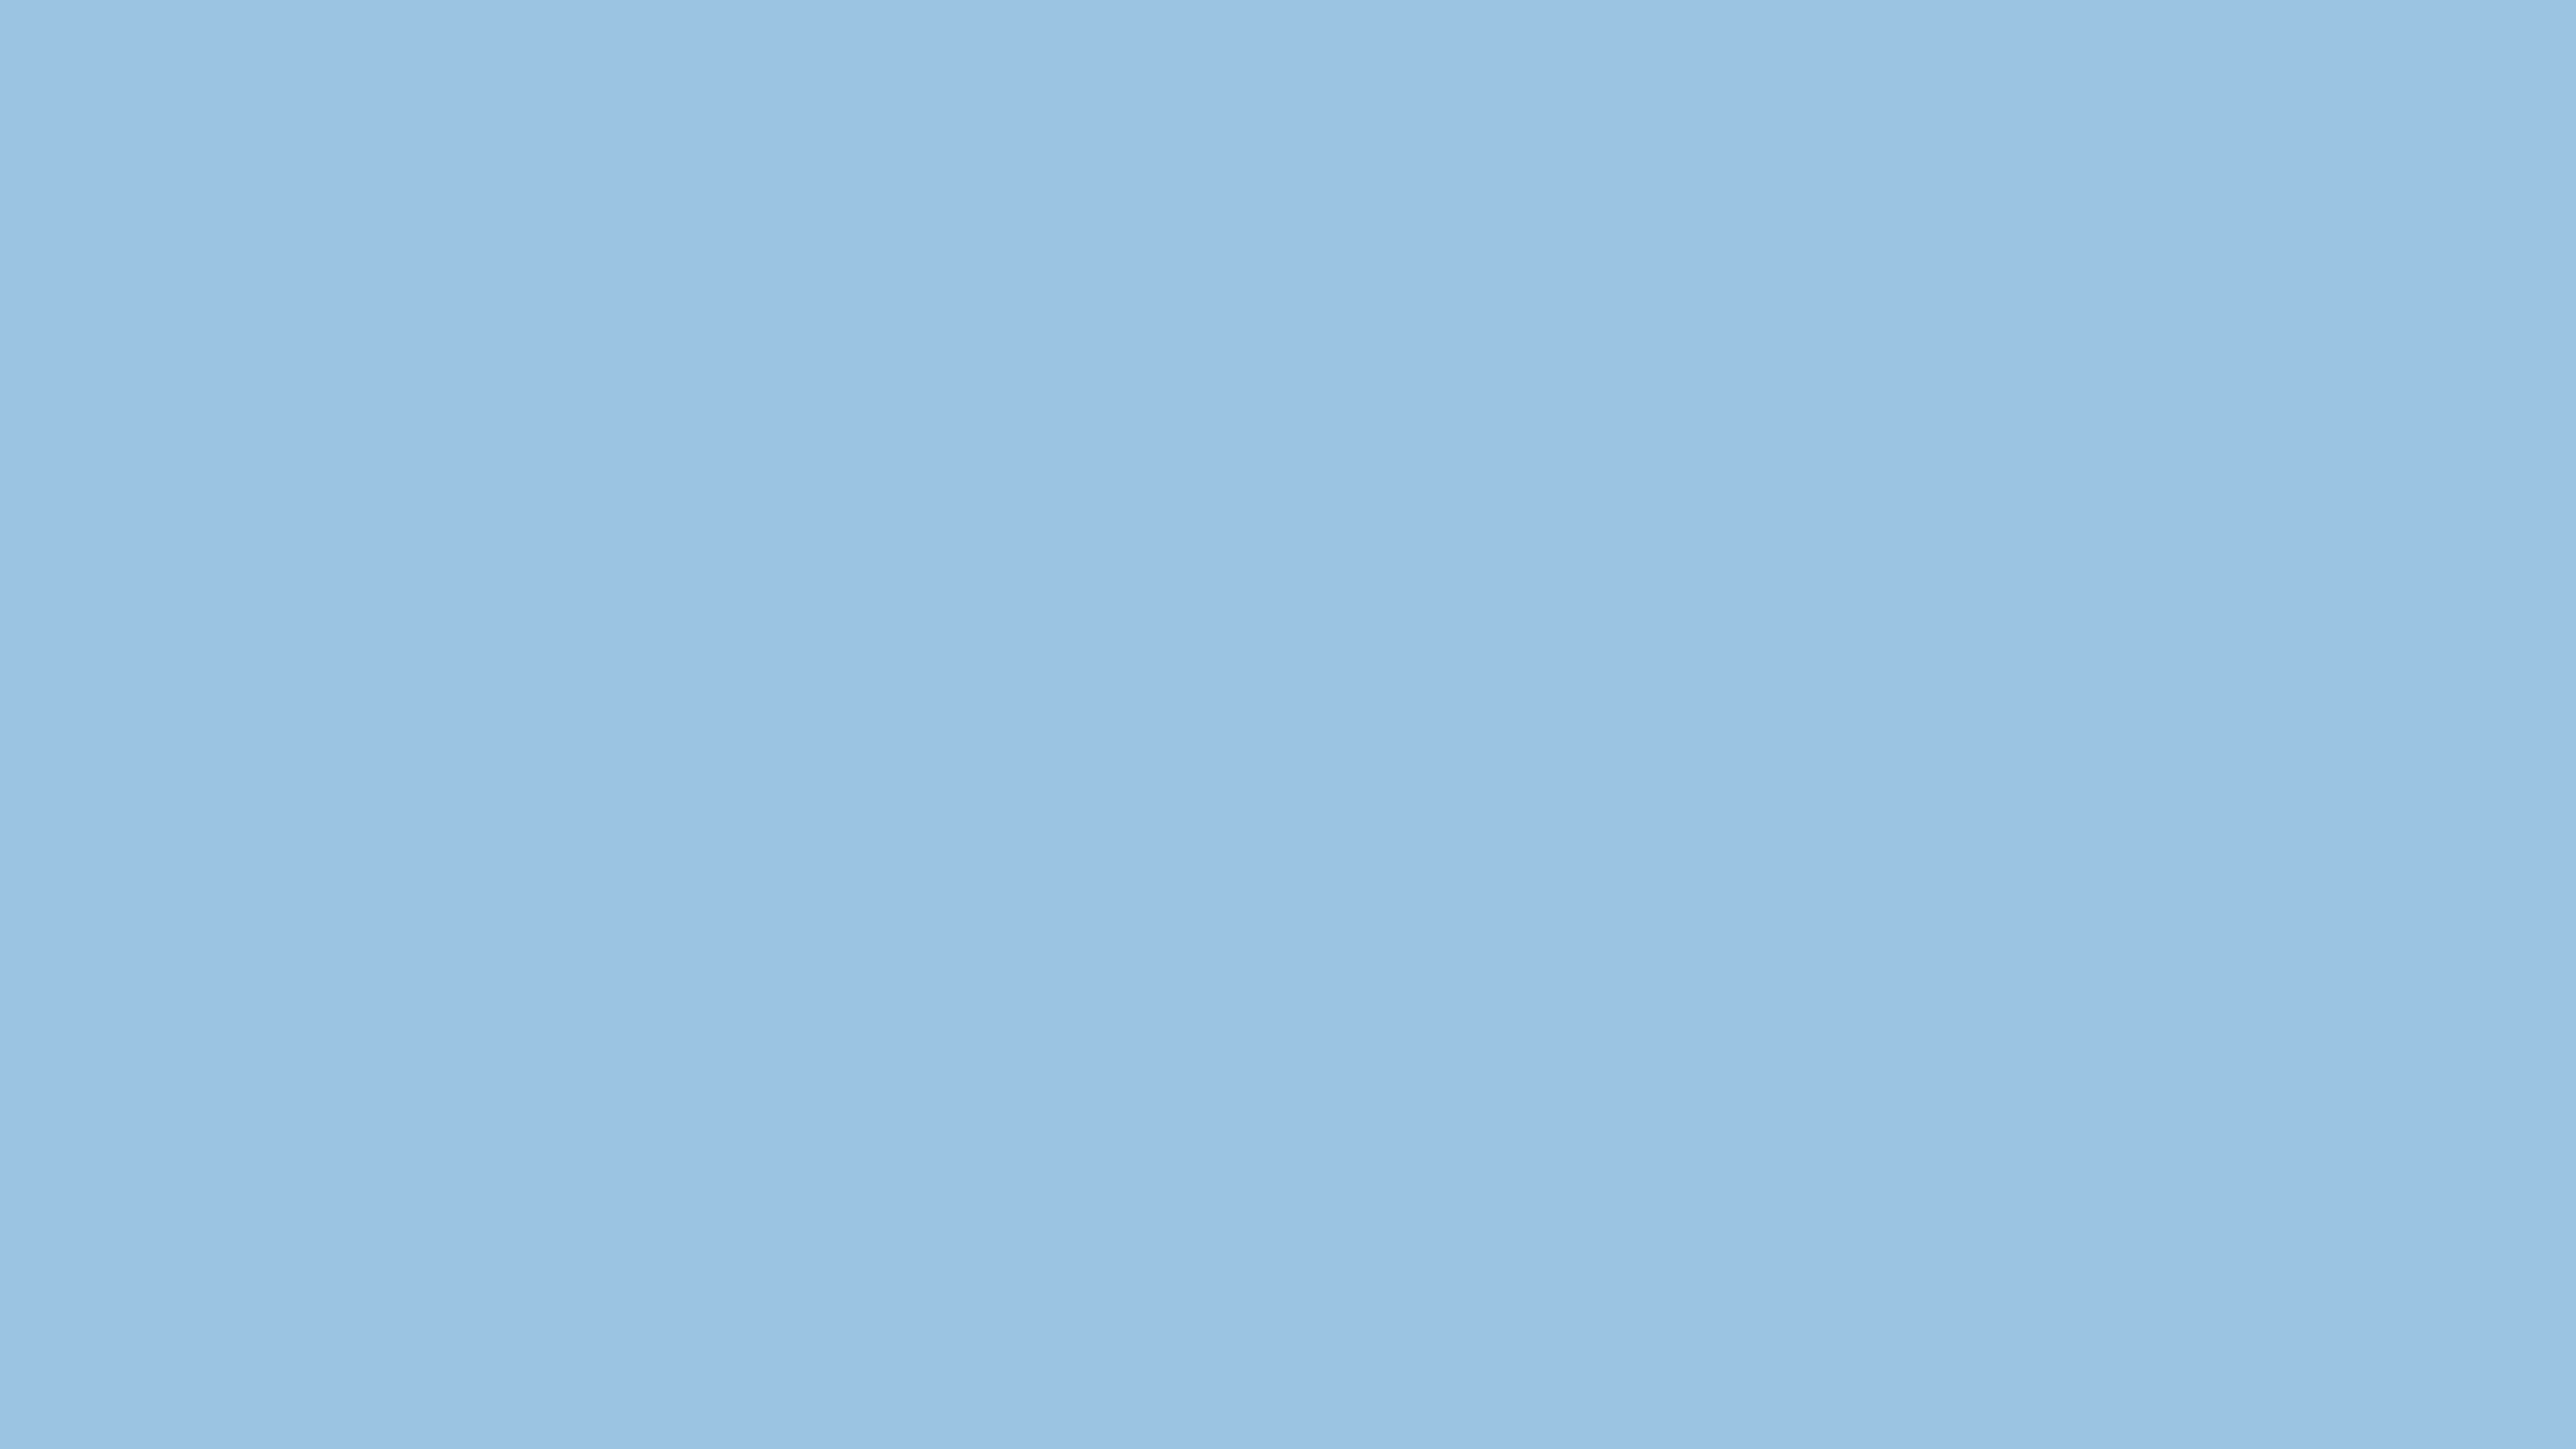 3840x2160 Pale Cerulean Solid Color Background